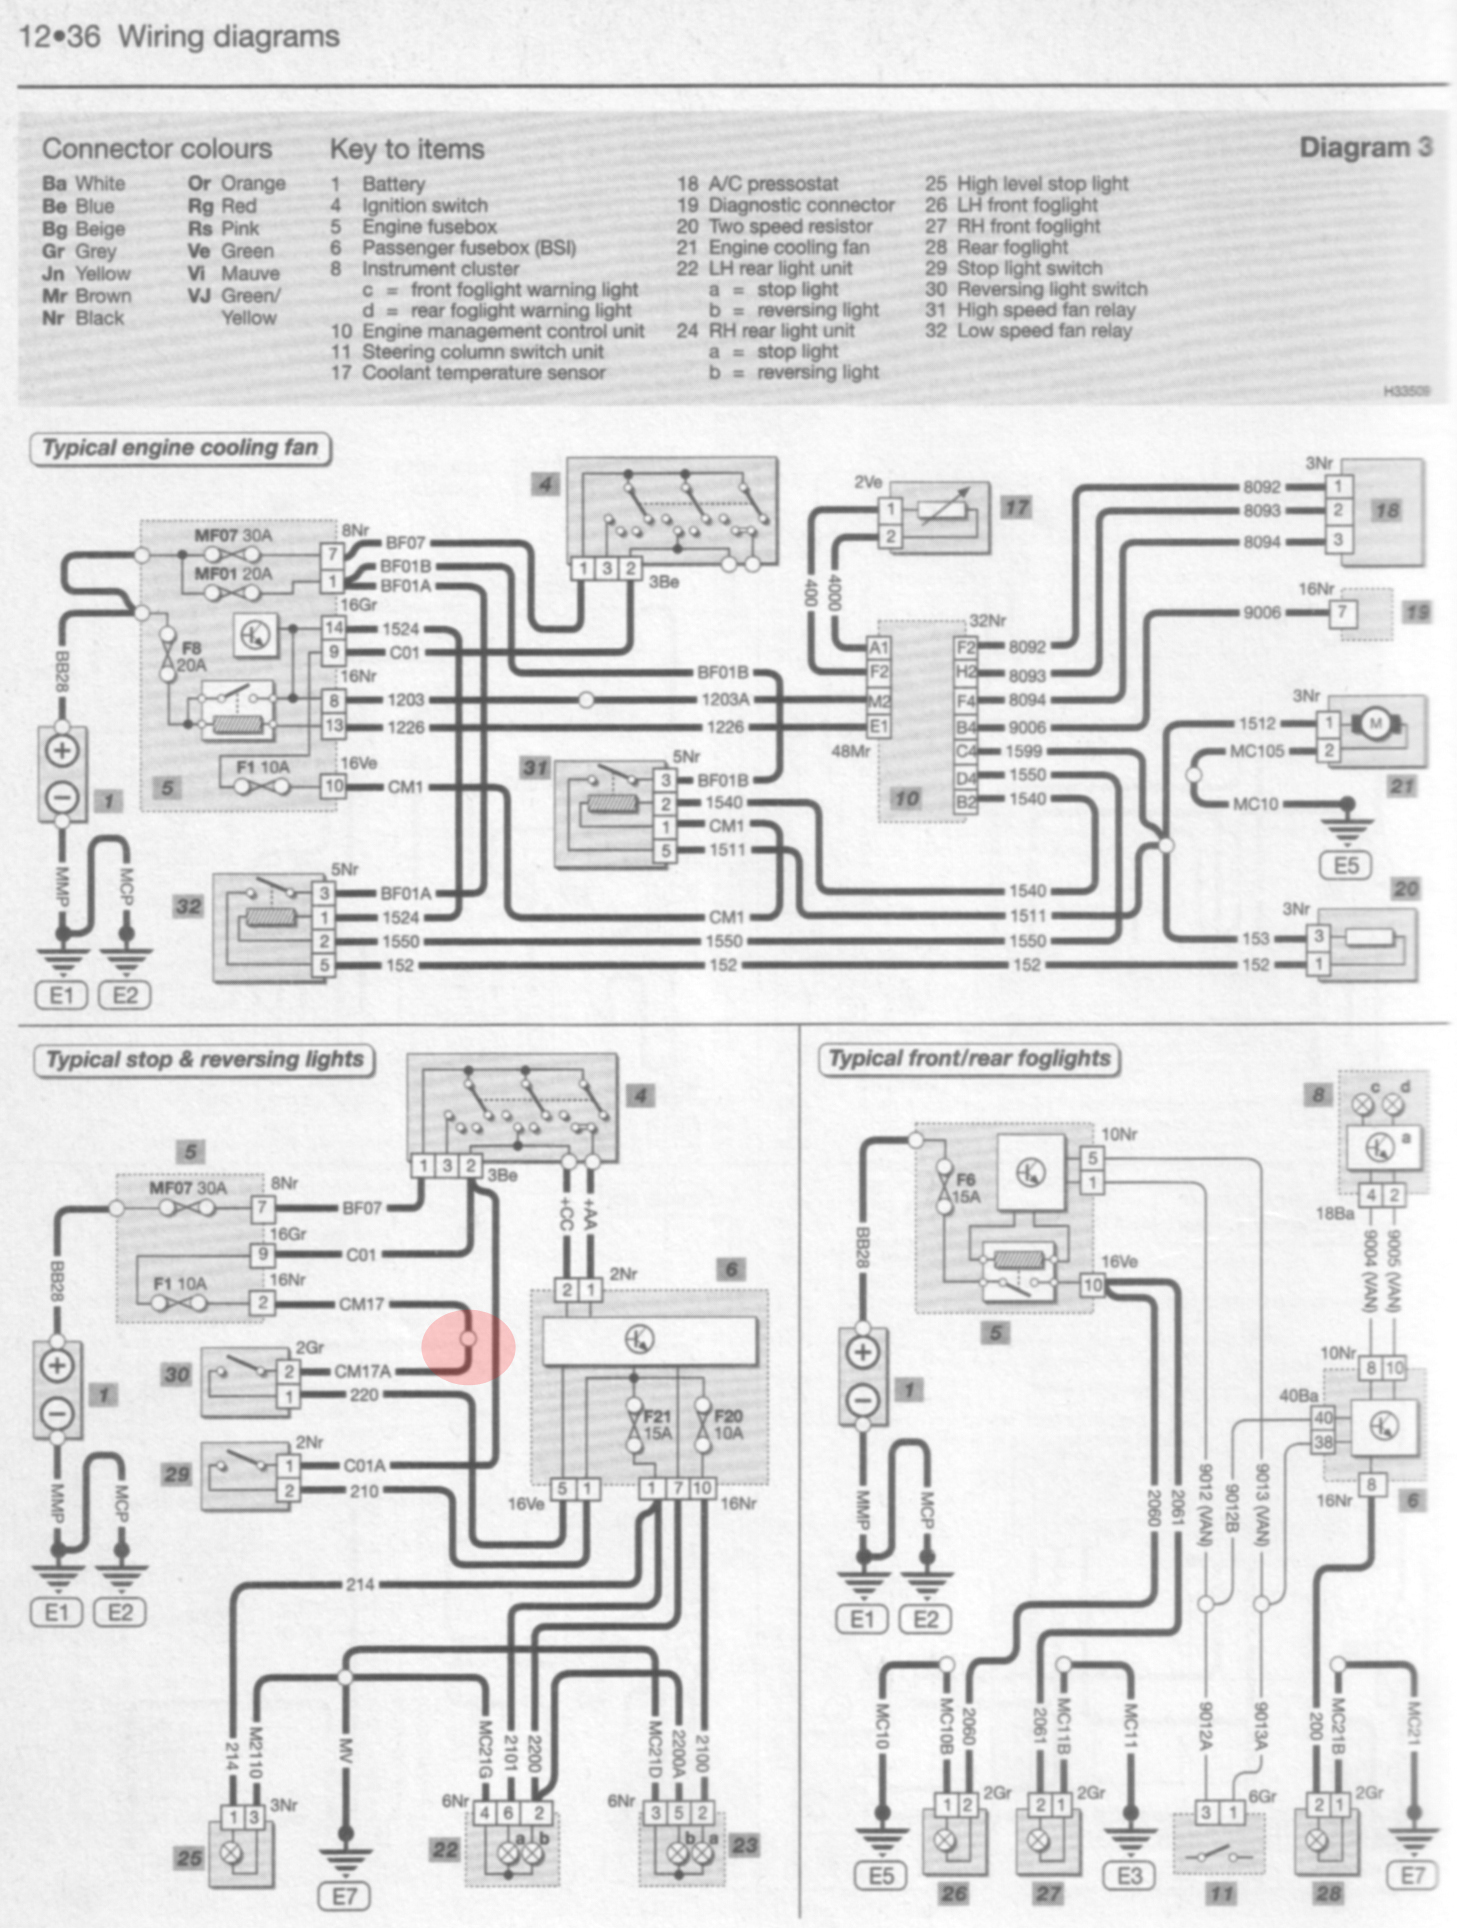 peugeot 206 kfw wiring diagram peugeot 206 headlight wiring diagram